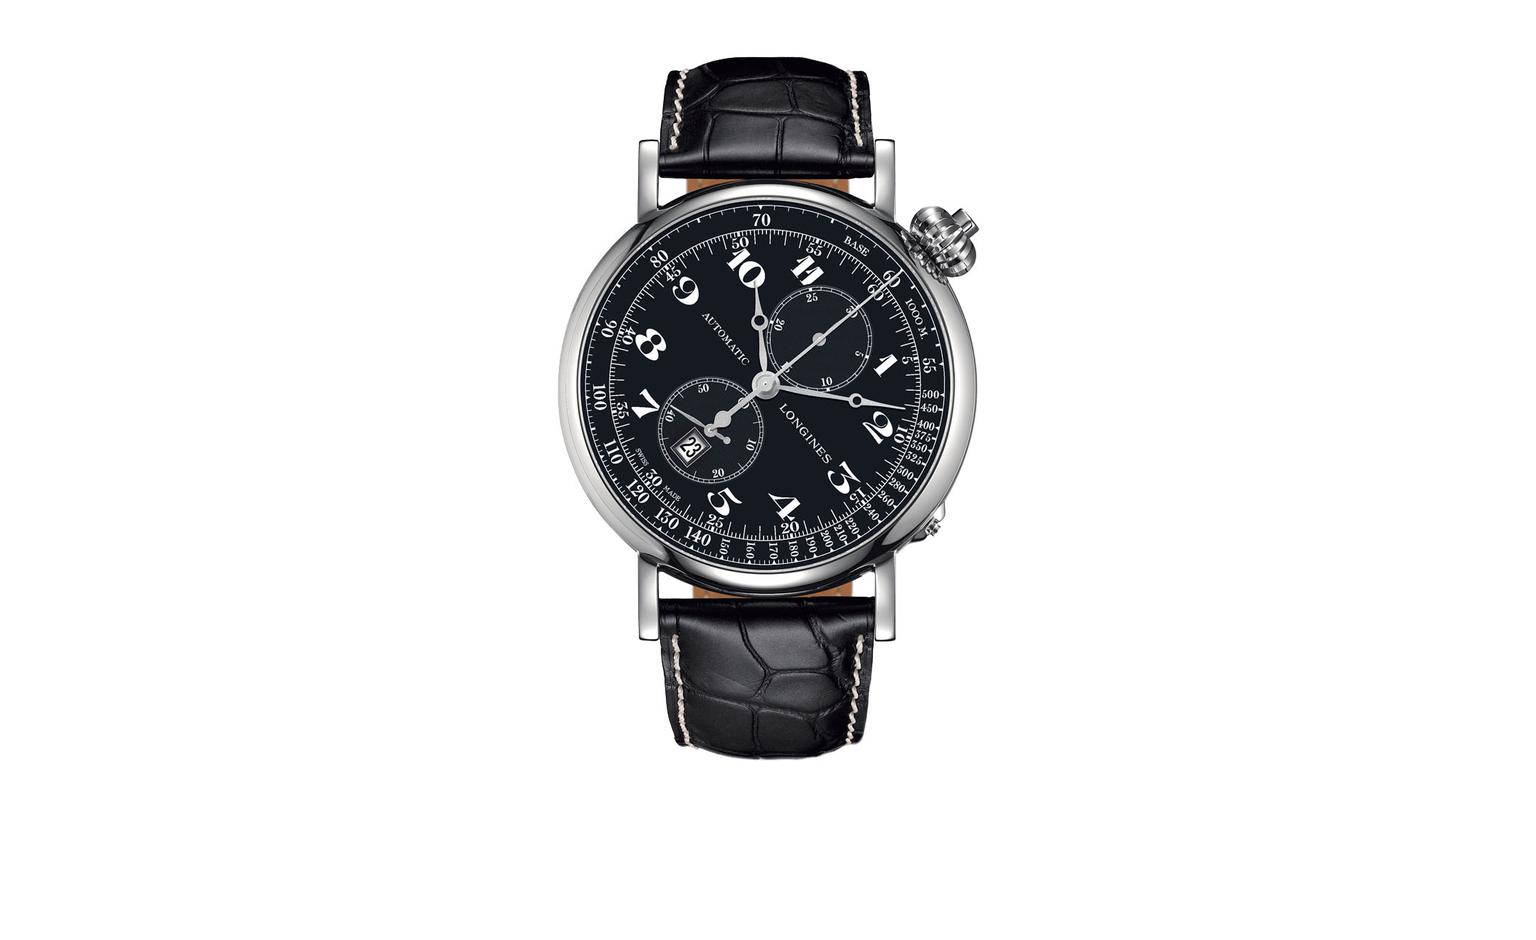 Longines-Avigation-Type-A-7-zoom